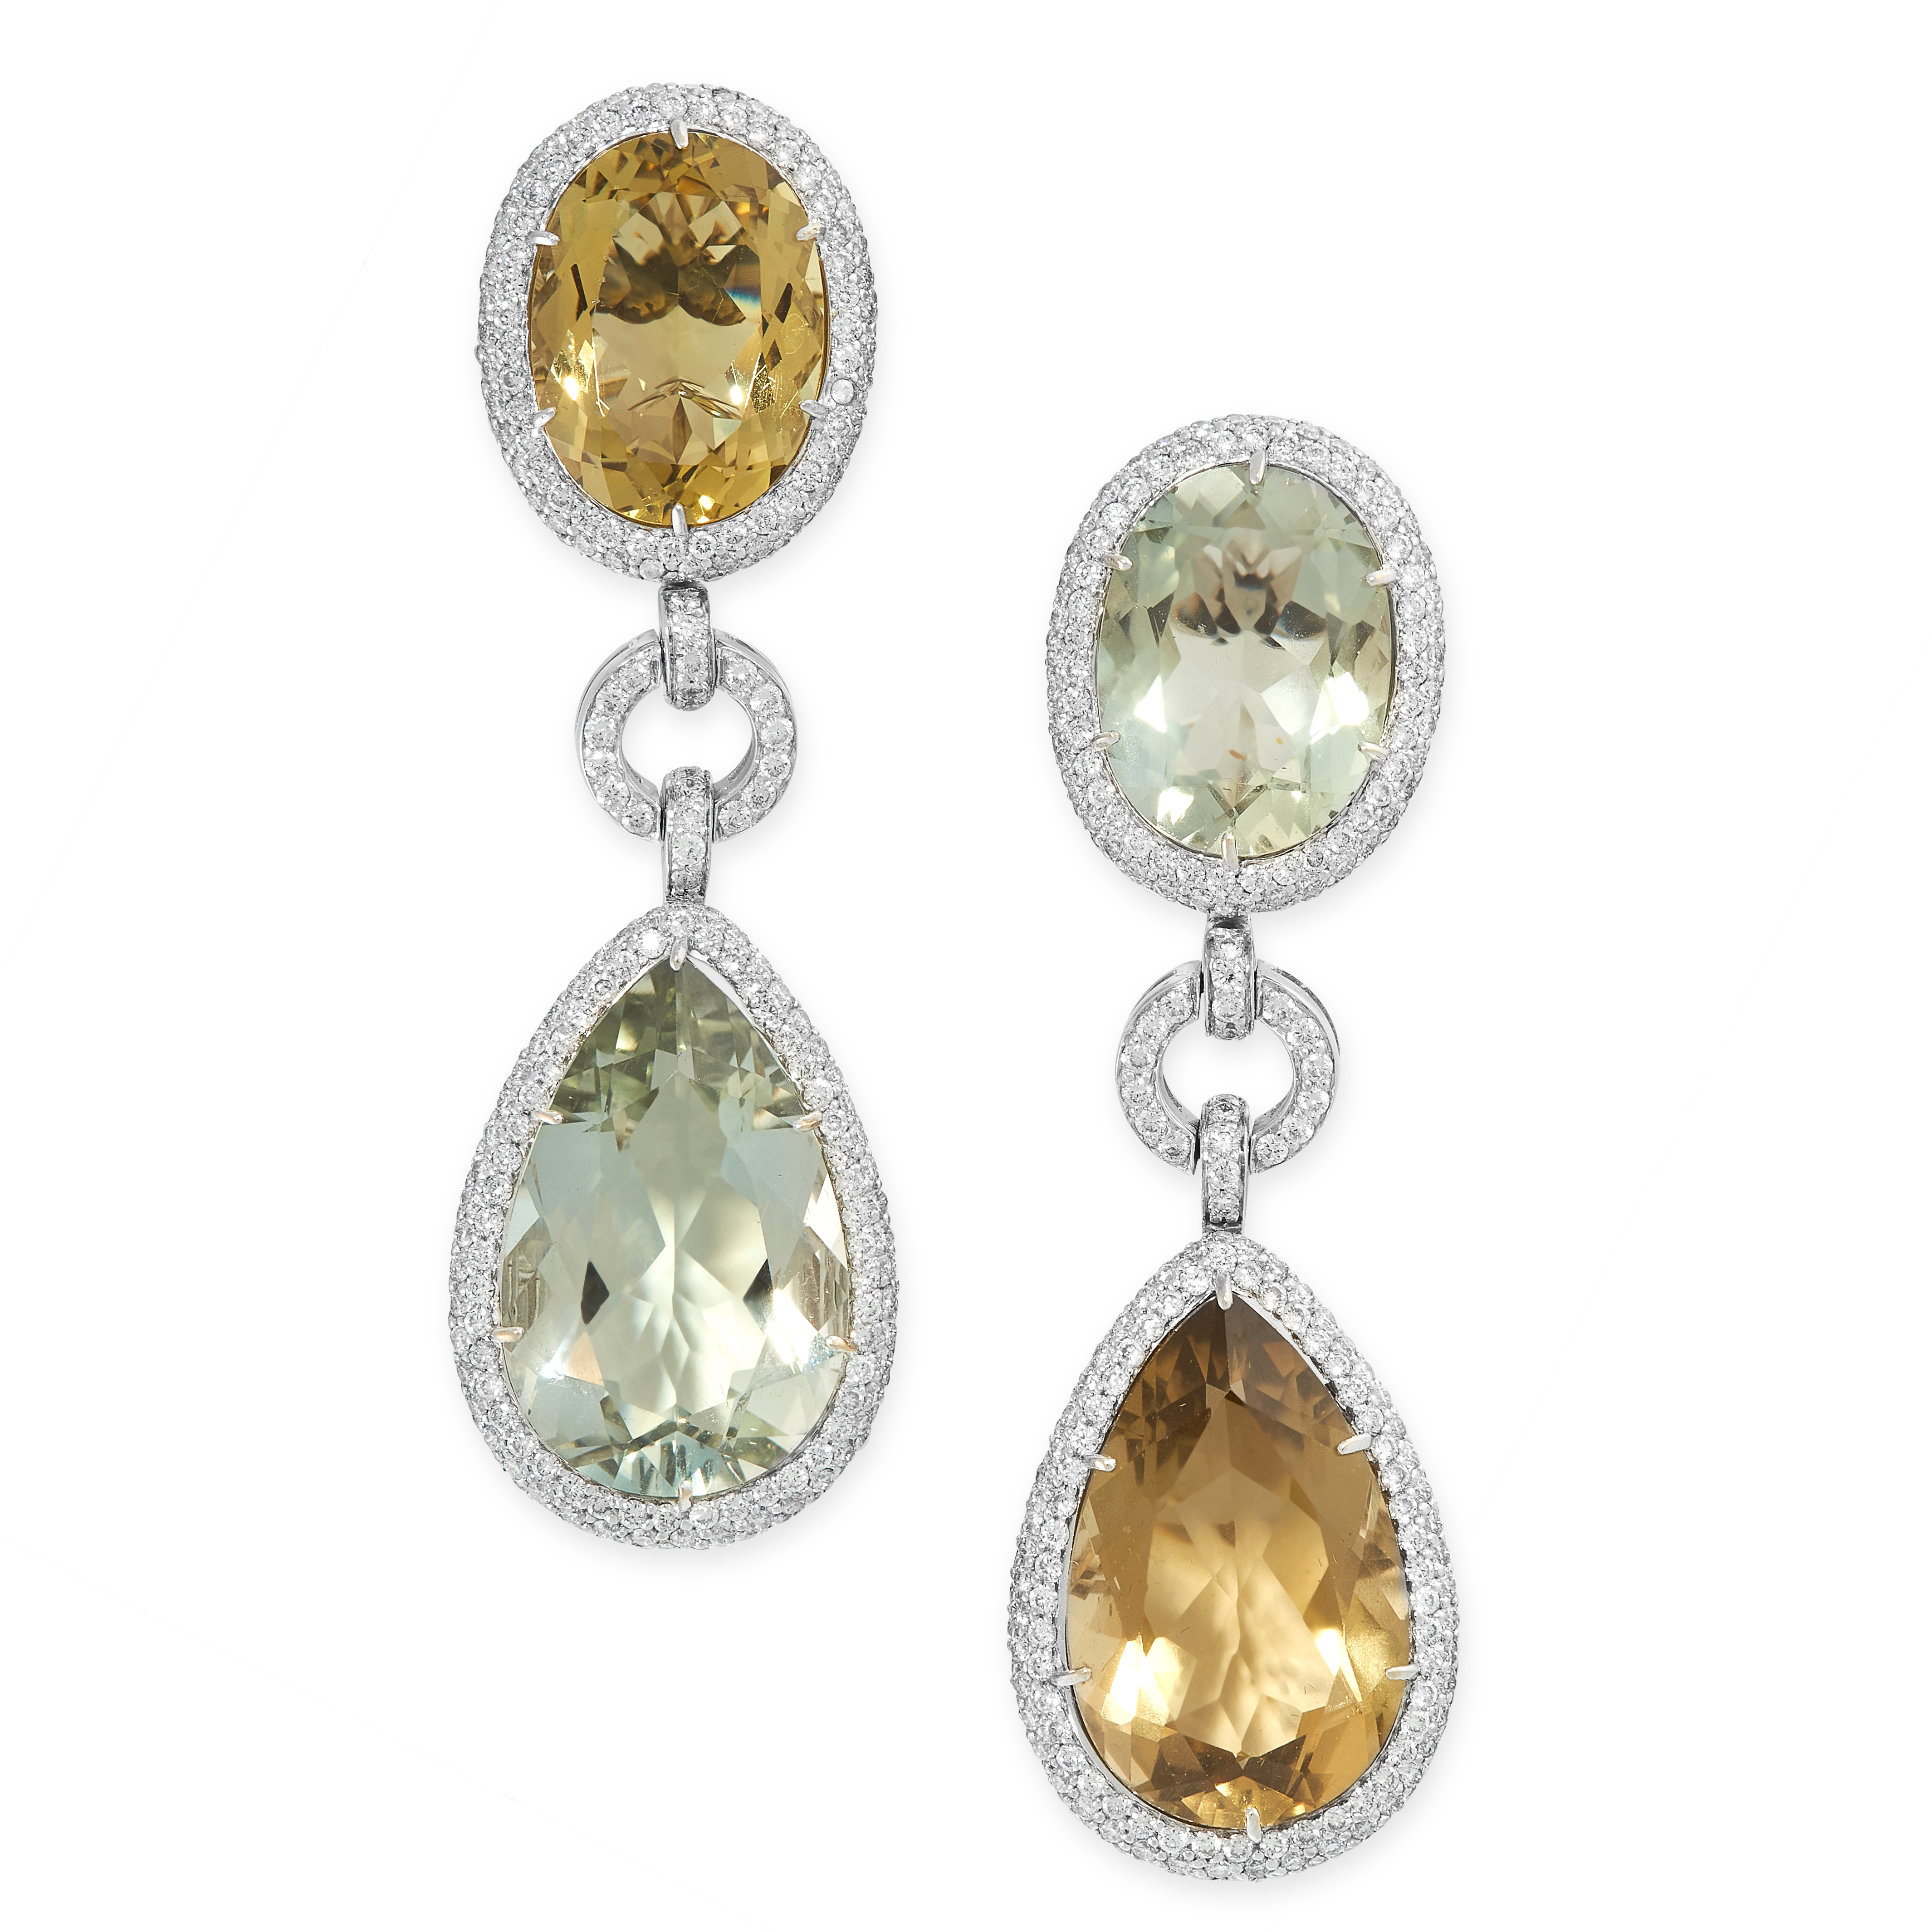 A PAIR OF DIAMOND, PRASIOLITE AND CITRINE EARRINGS of asymmetrical design, set alternately with pear